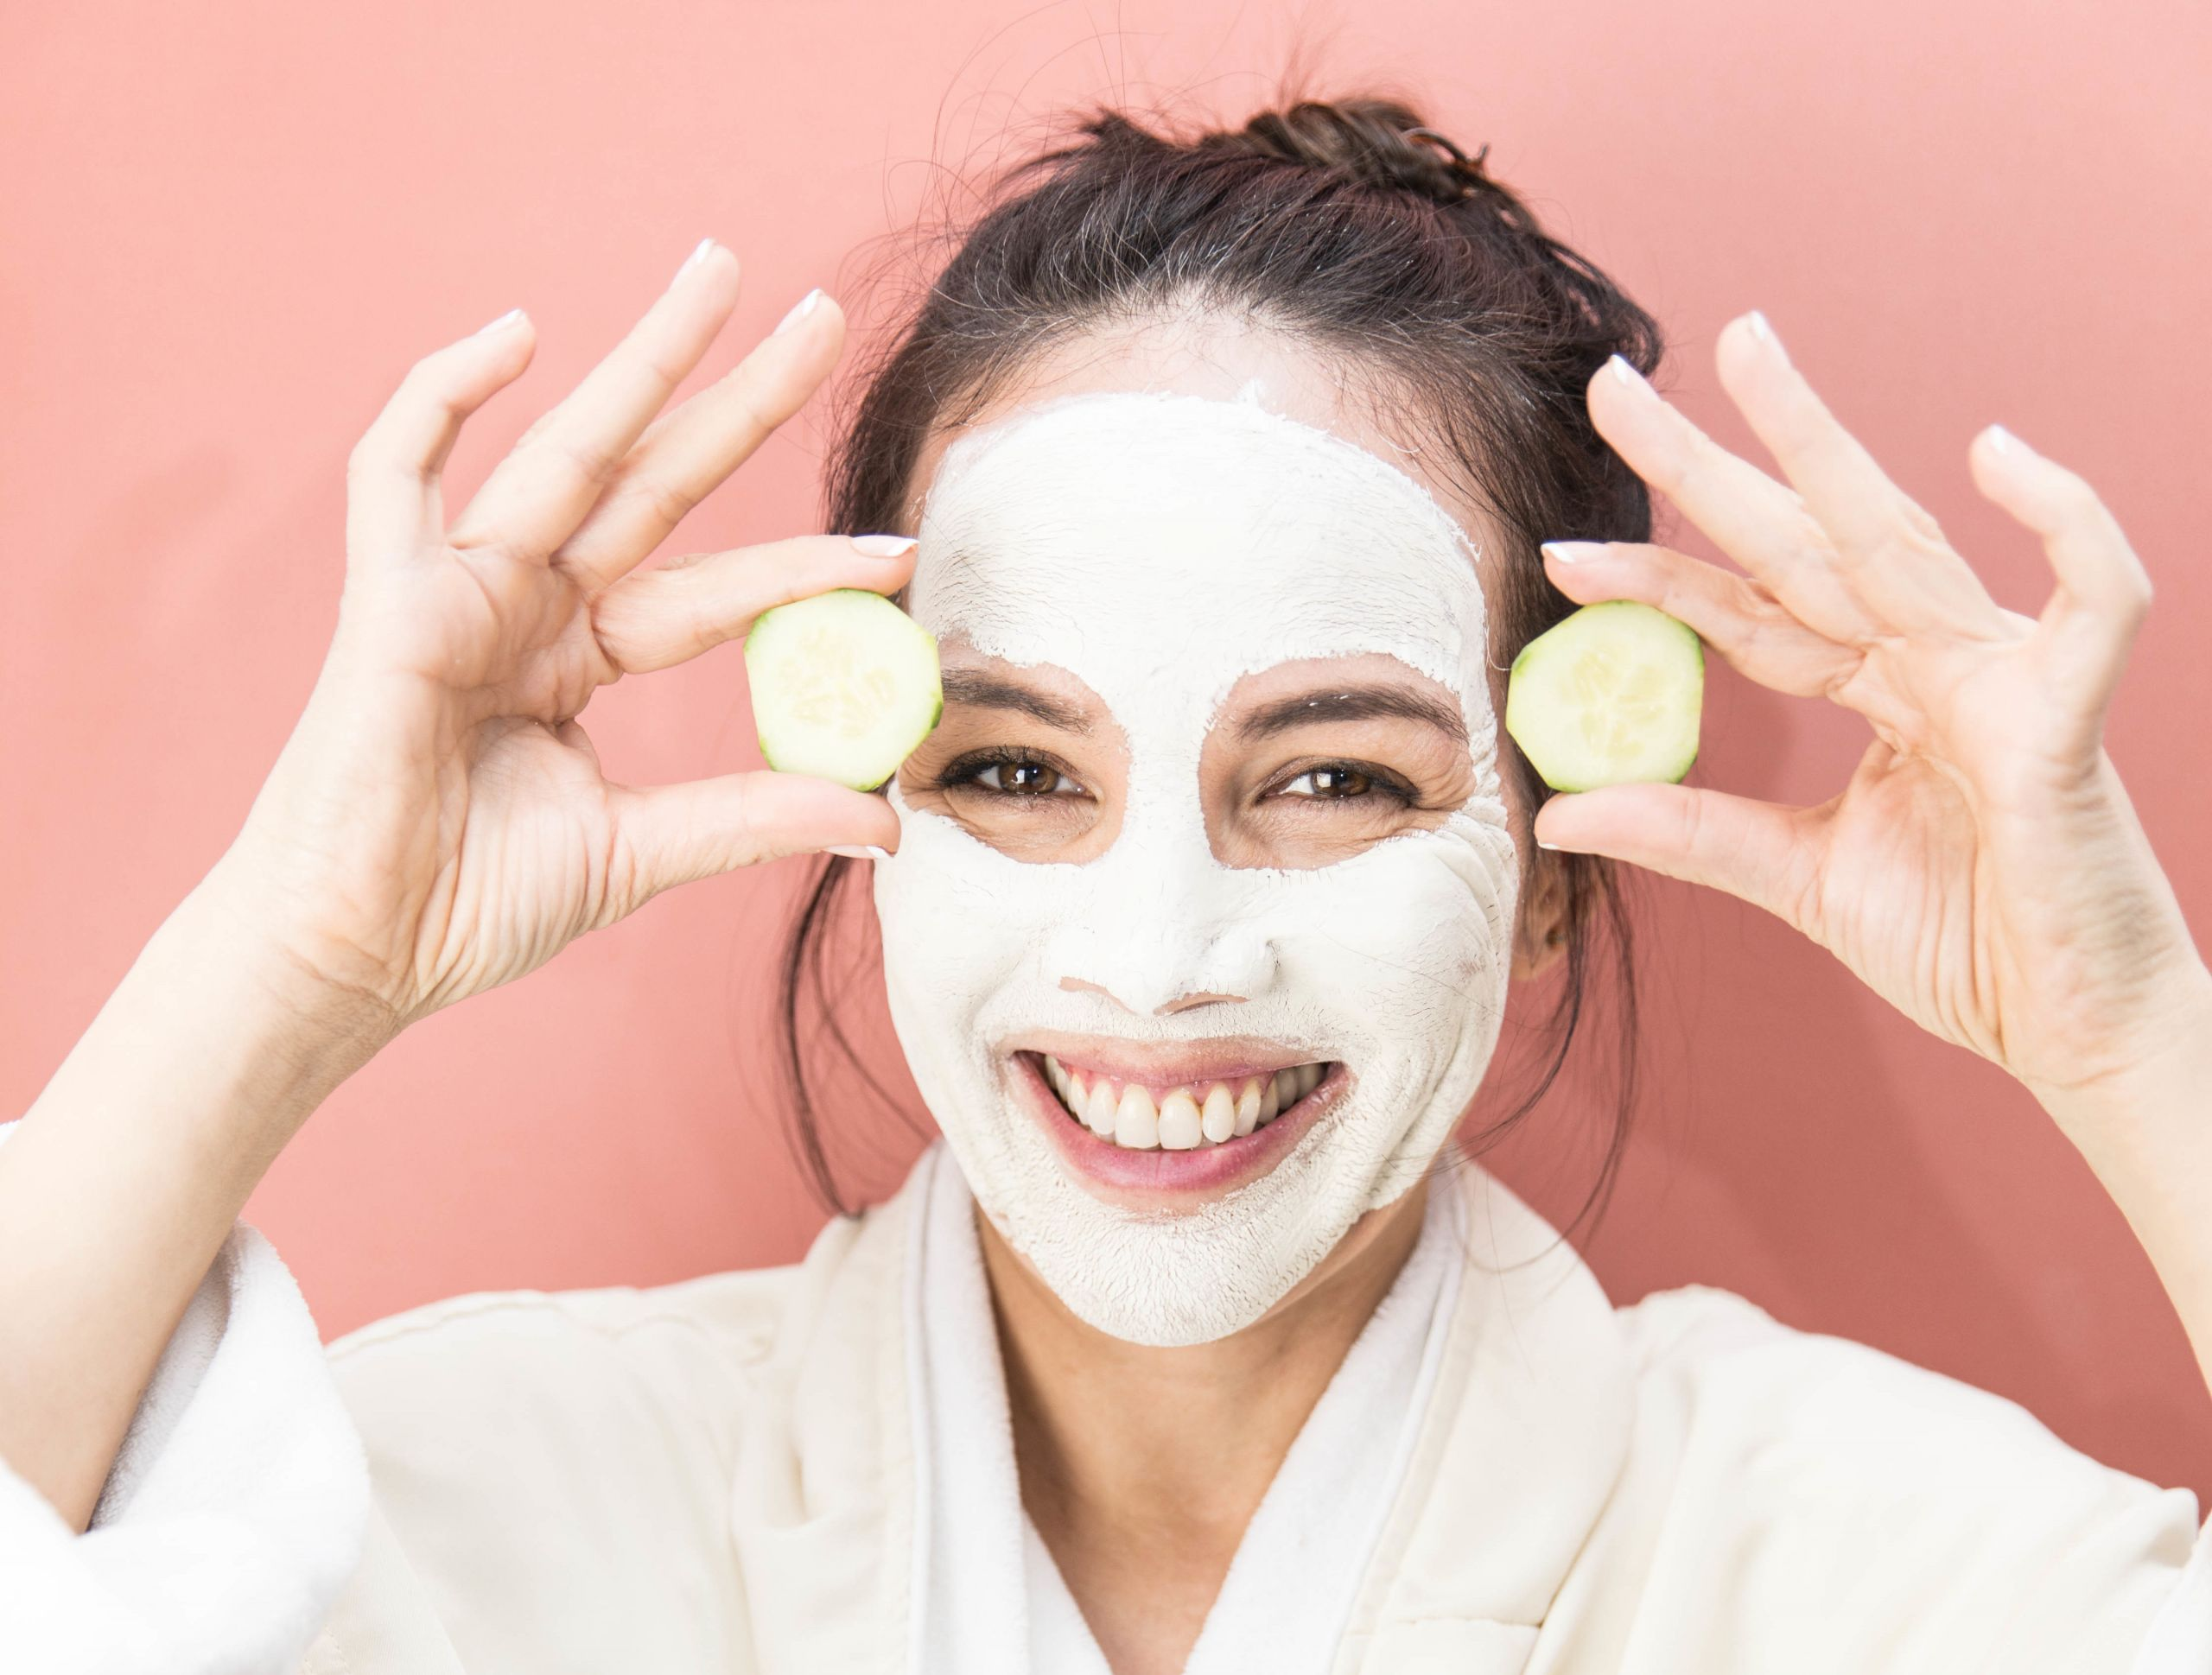 DIY Face Mask For Glowing Skin  4 DIY Face Masks For Glowing Skin Thayers Natural Reme s